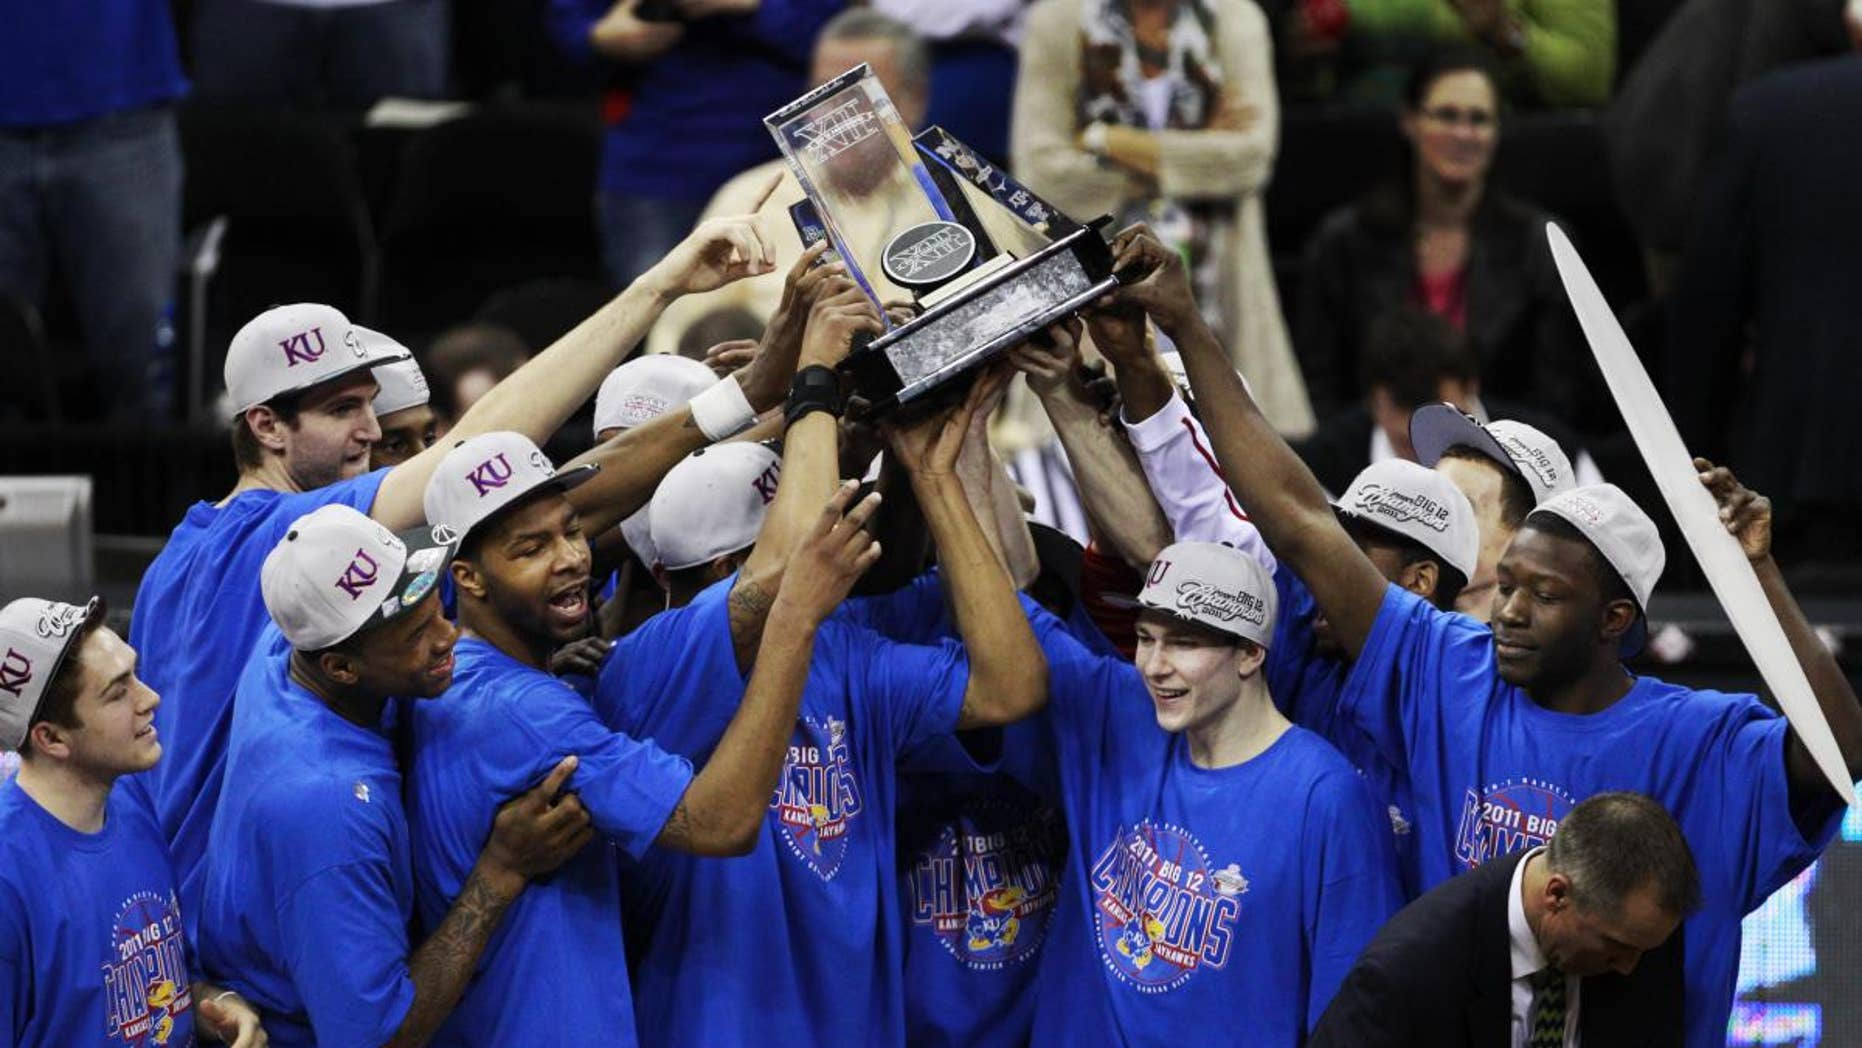 The Kansas Jayhawks celebrate winning the final of the Big 12 men's basketball tournament against Texas in Kansas City, Mo., Saturday, March 12, 2011. (AP Photo/Orlin Wagner)